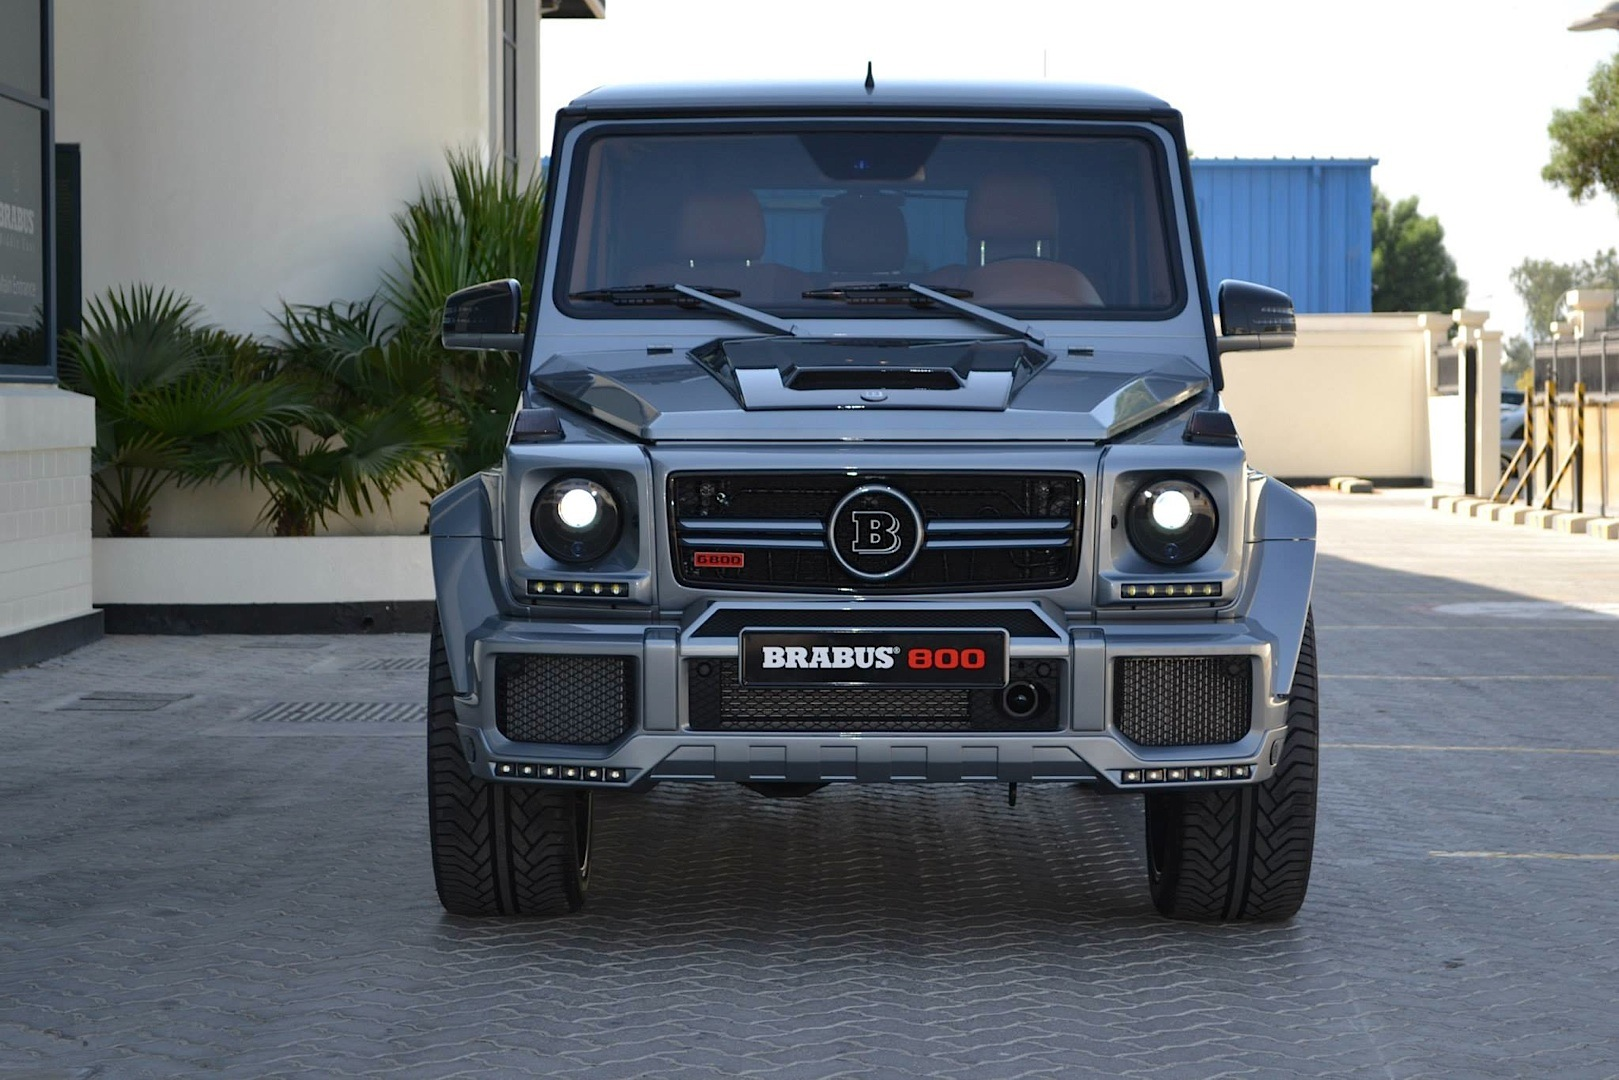 brabus 800 g 65 amg for the taking in dubai autoevolution. Black Bedroom Furniture Sets. Home Design Ideas